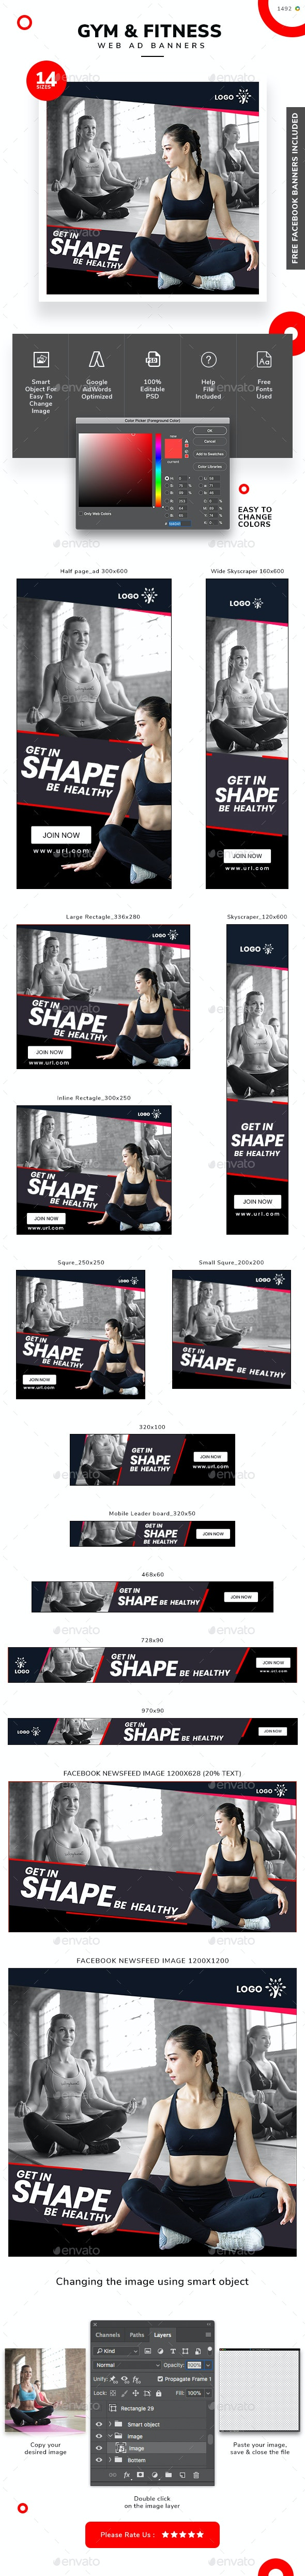 Gym/Fitness Banner Set - Banners & Ads Web Elements